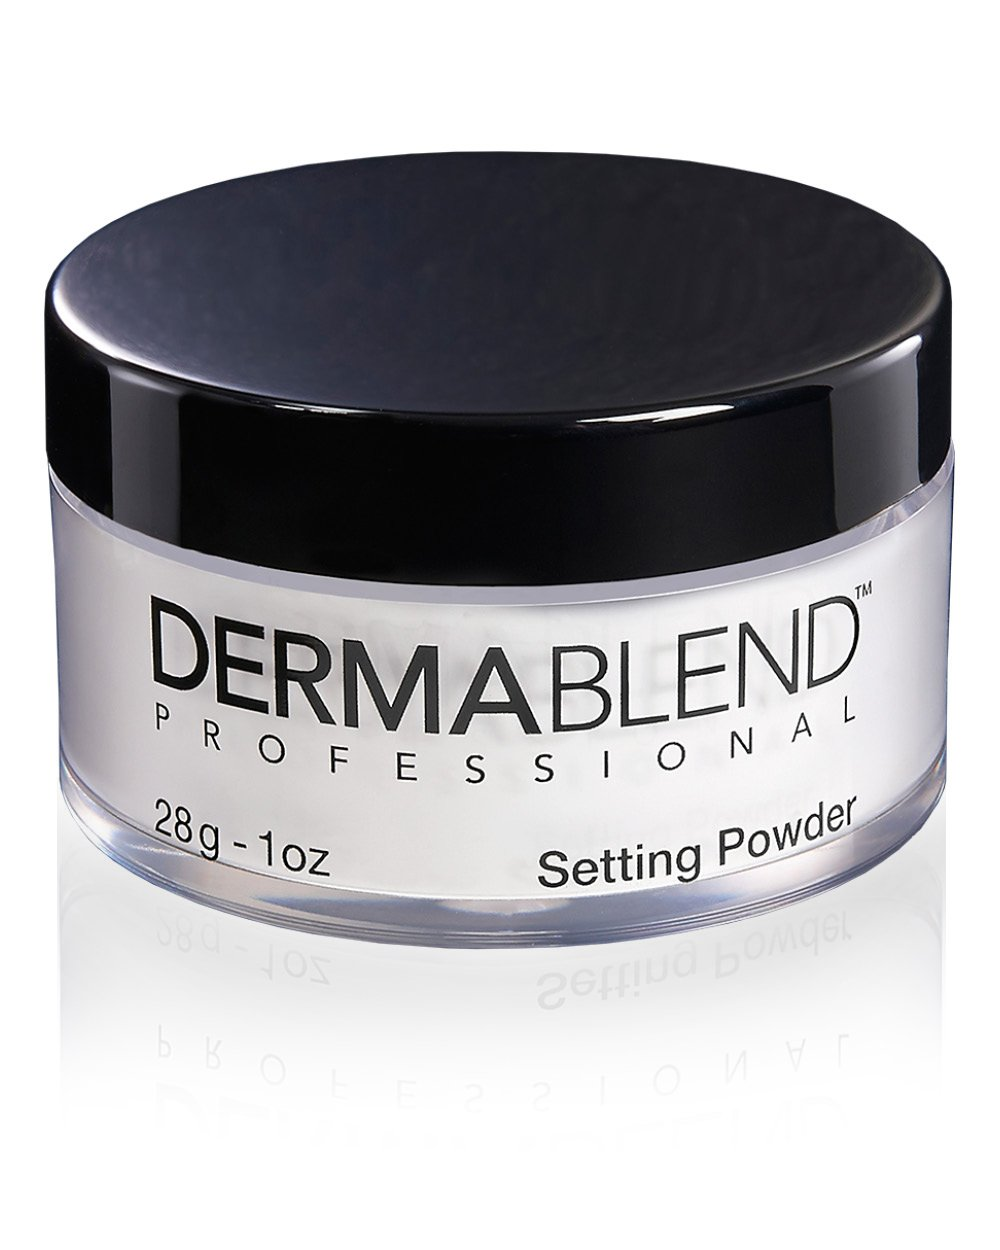 Dermablend Loose Setting Powder for up to 16 Hours of Coverage, 3 Setting Powder Shades, 1 Oz.